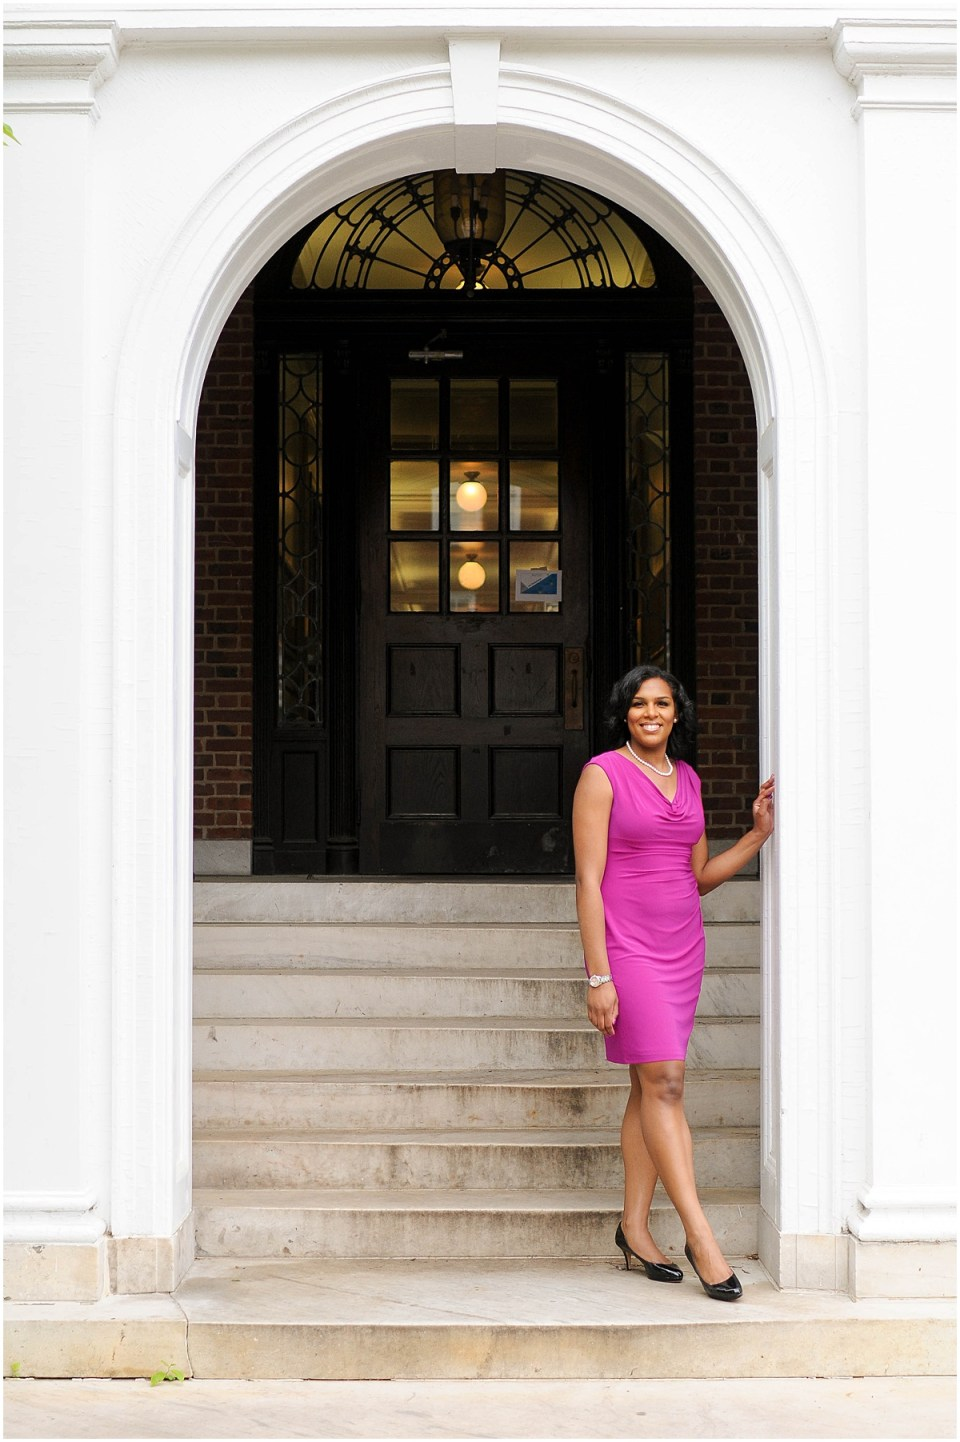 Law school graduation portraits and headshots | University of Maryland | Ana Isabel Photography 19